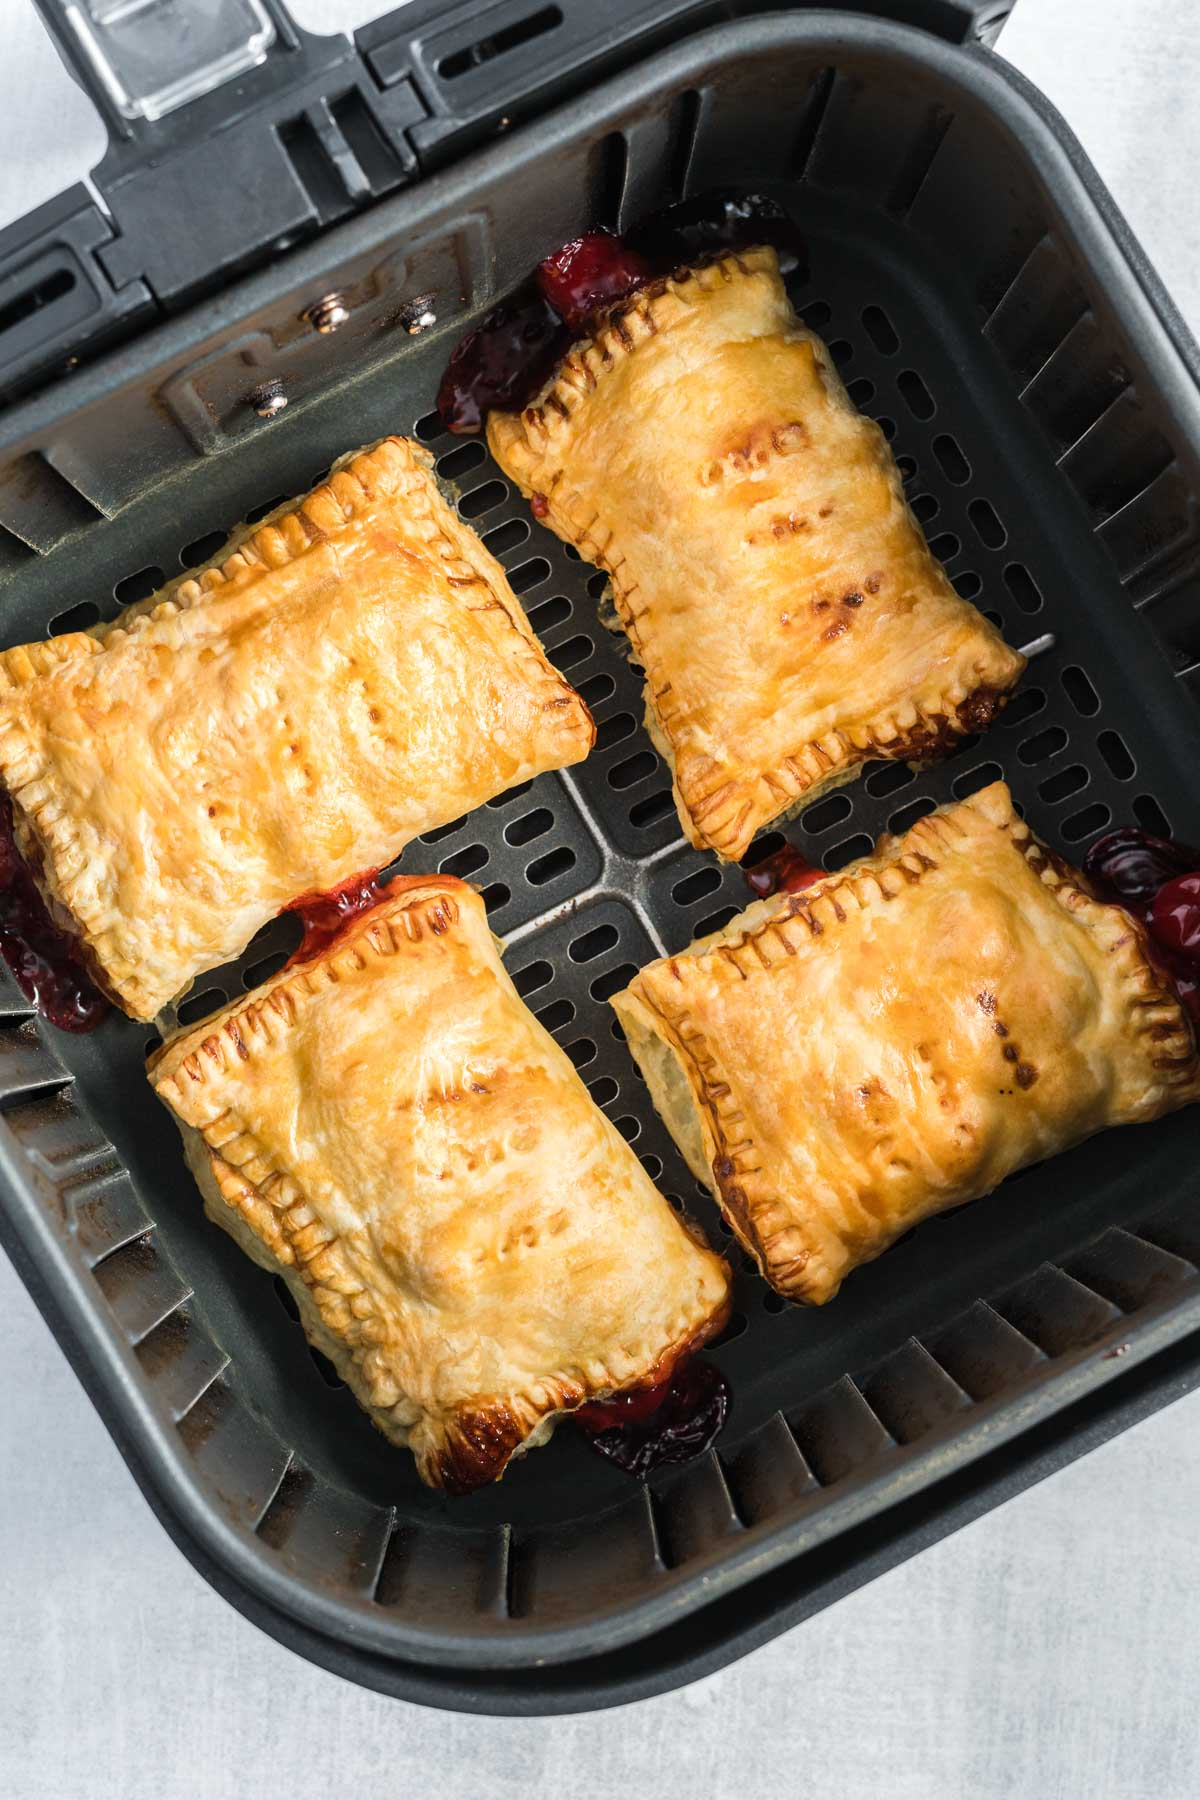 Four turnovers that are puffed and golden brown in an air fryer basket.